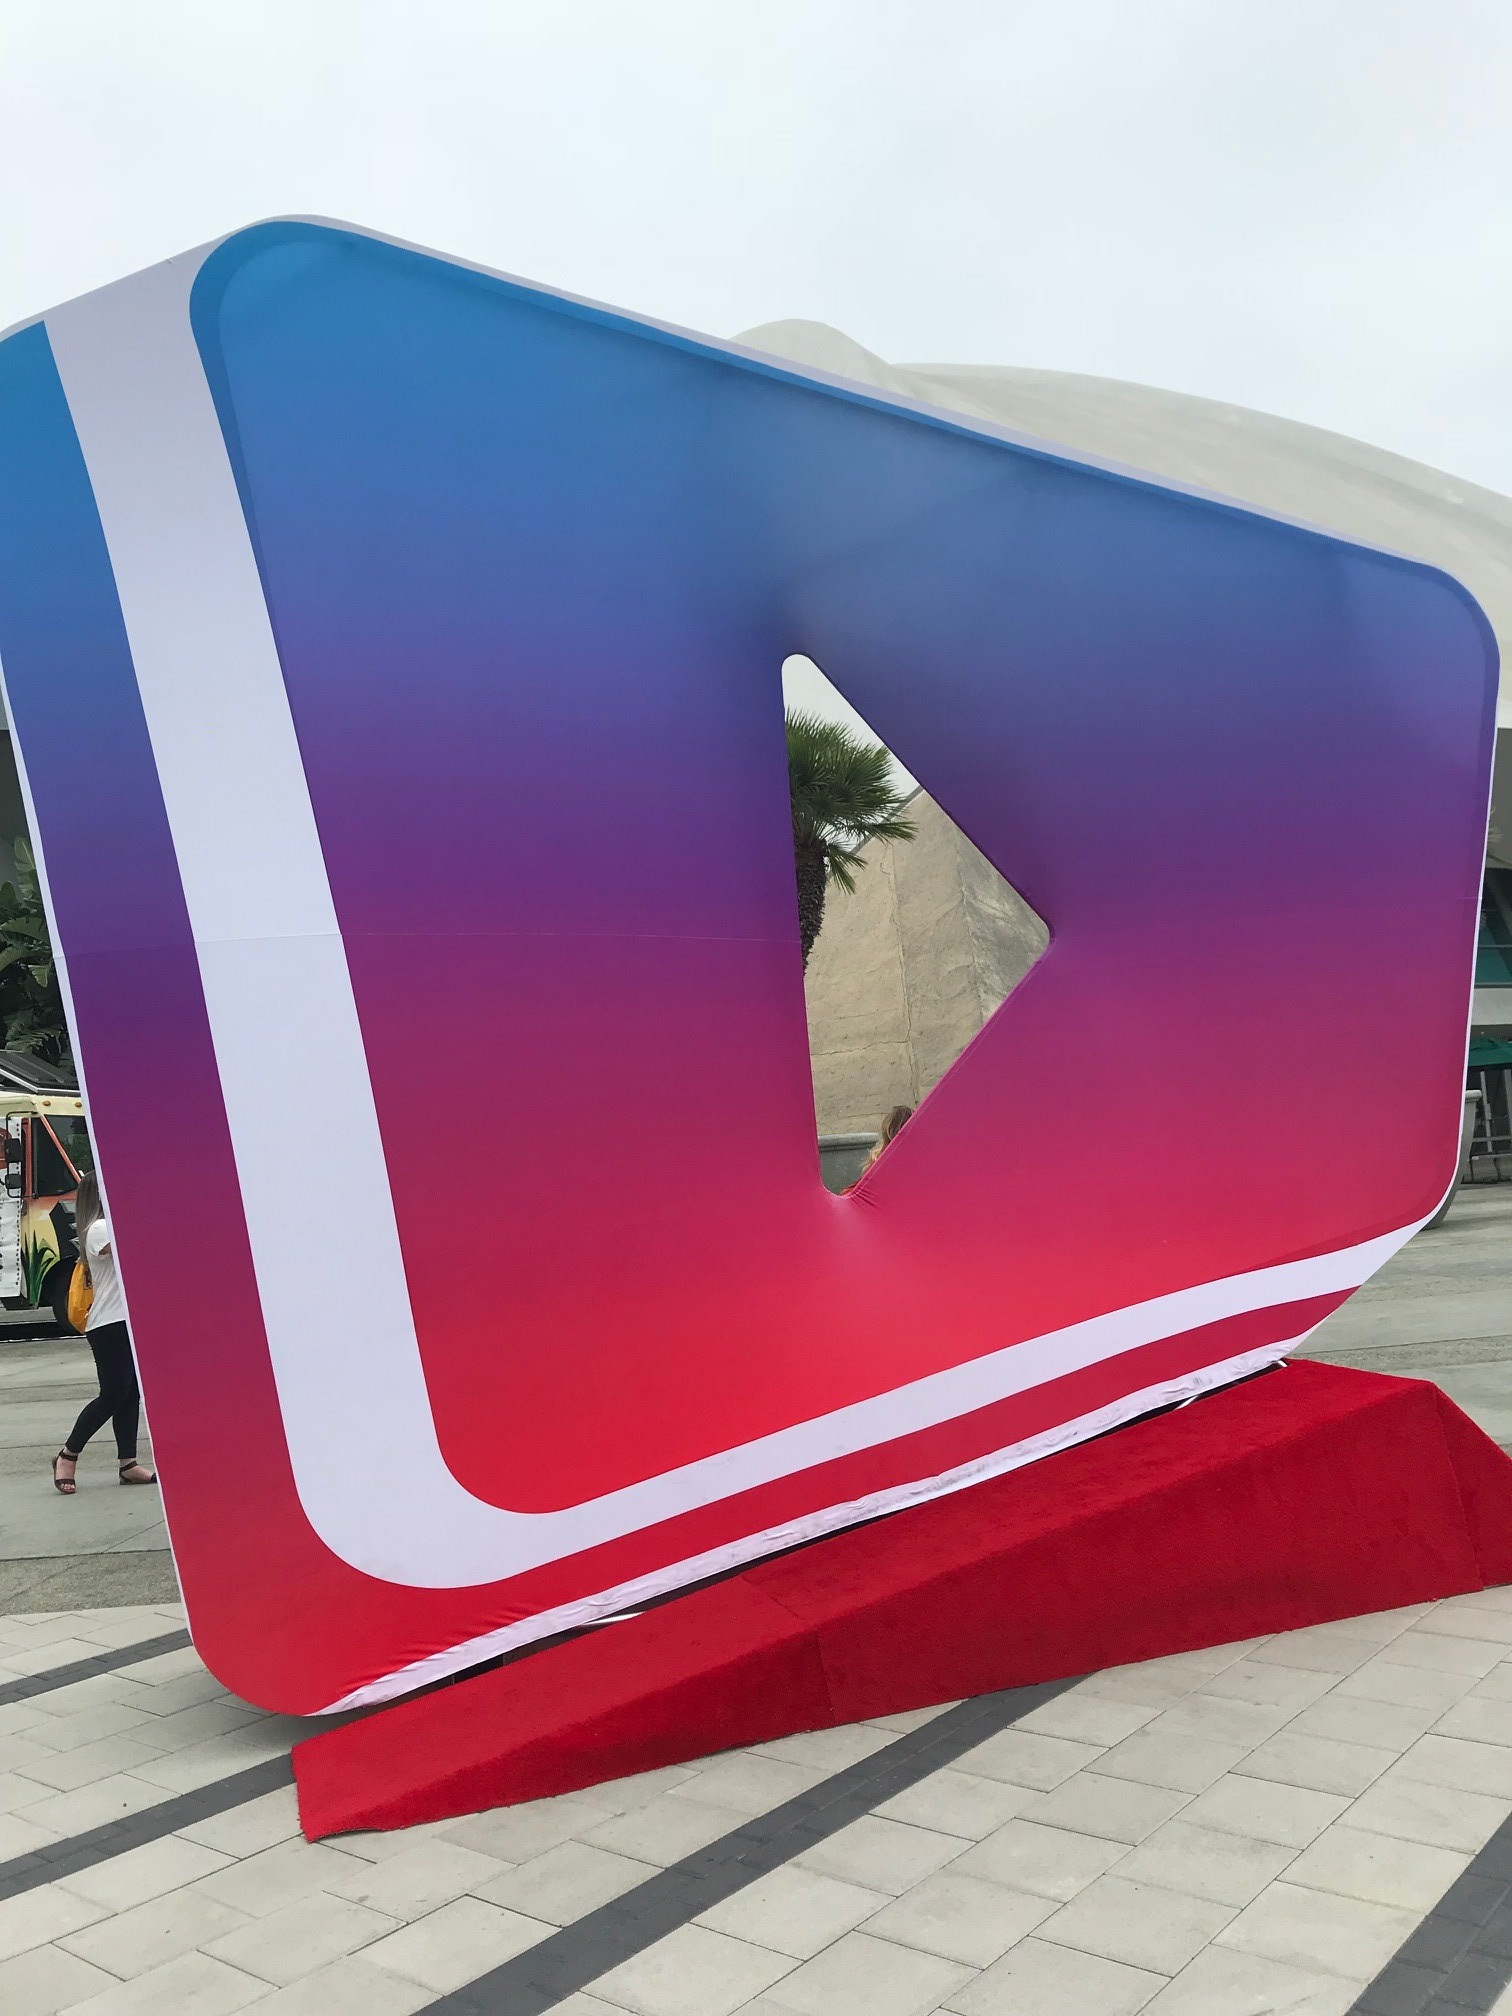 VIDCON 2018: VIDEO OPPORTUNITIES BEYOND YOUTUBE